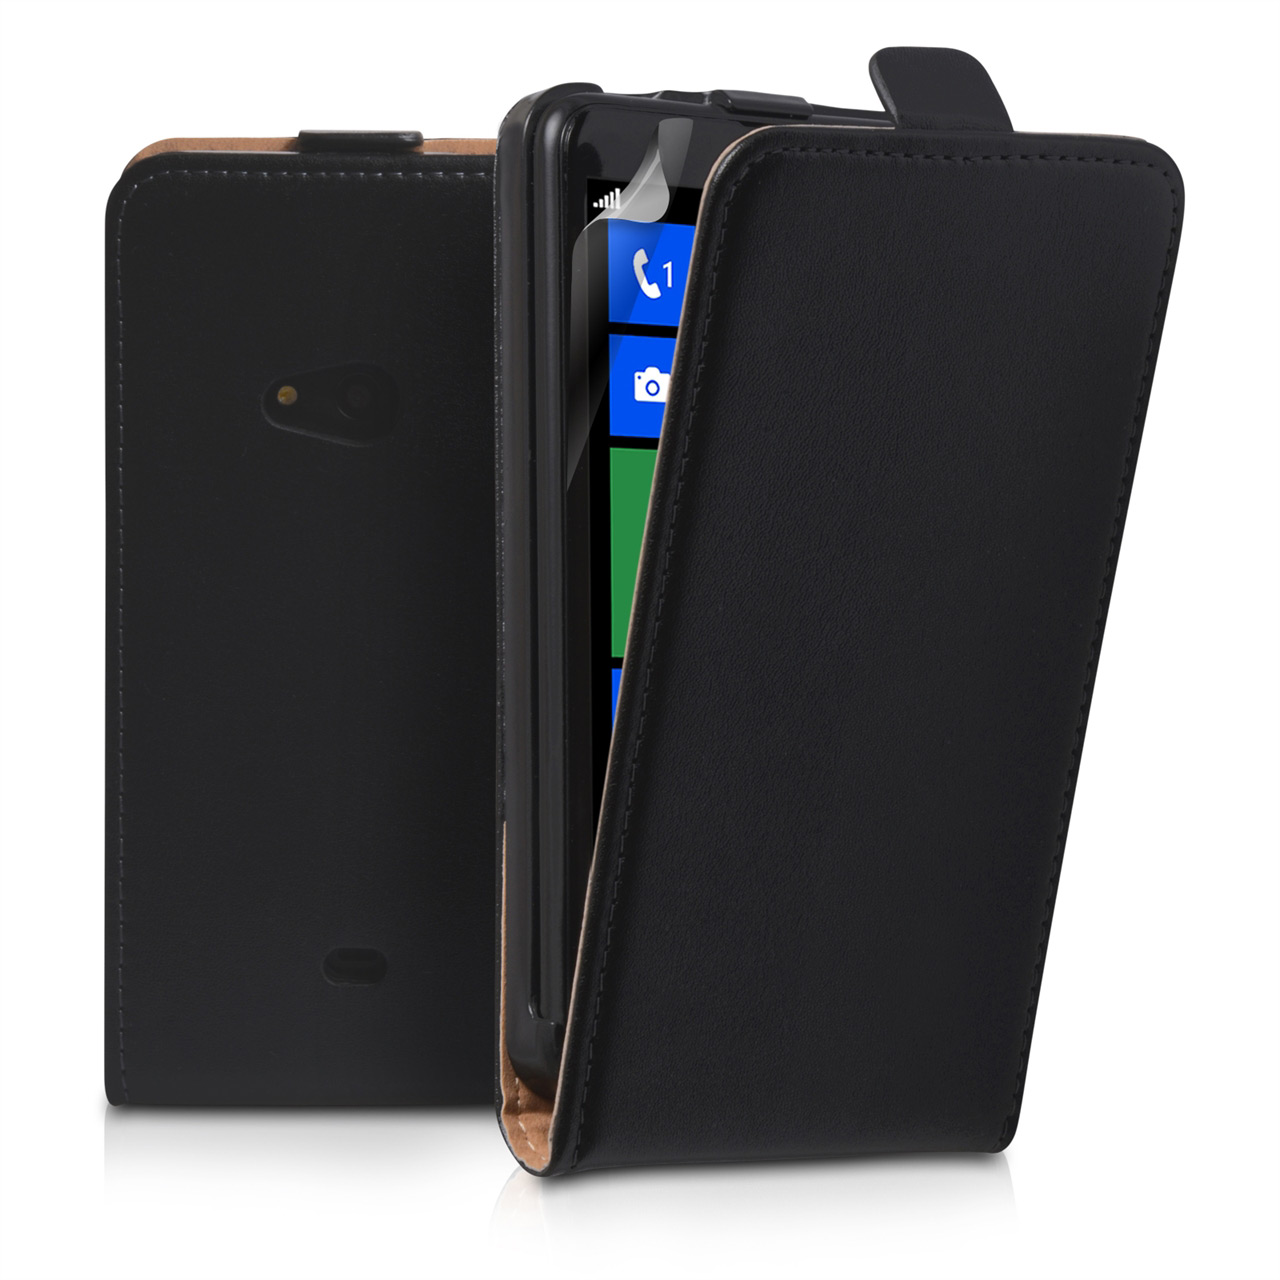 YouSave Accessories Nokia Lumia 625 Real Leather Flip Case - Black